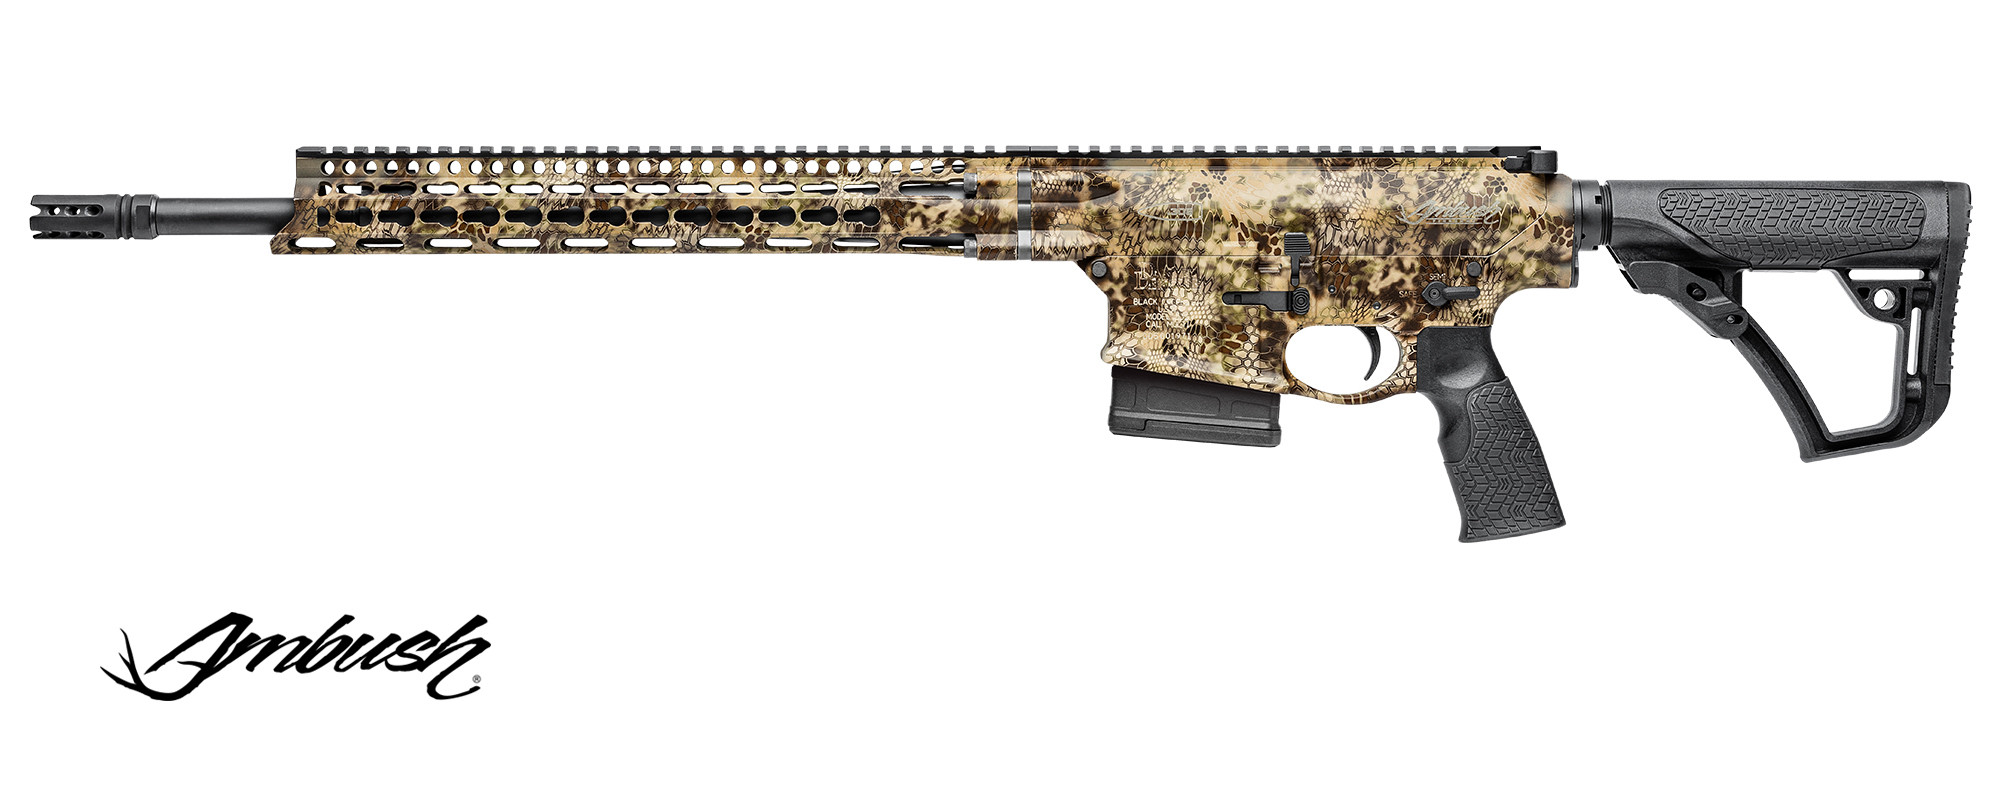 Puška Daniel Defense DD5 V1 Ambush Kryptec Highlander, .308 Win. (7,62x51), 18""